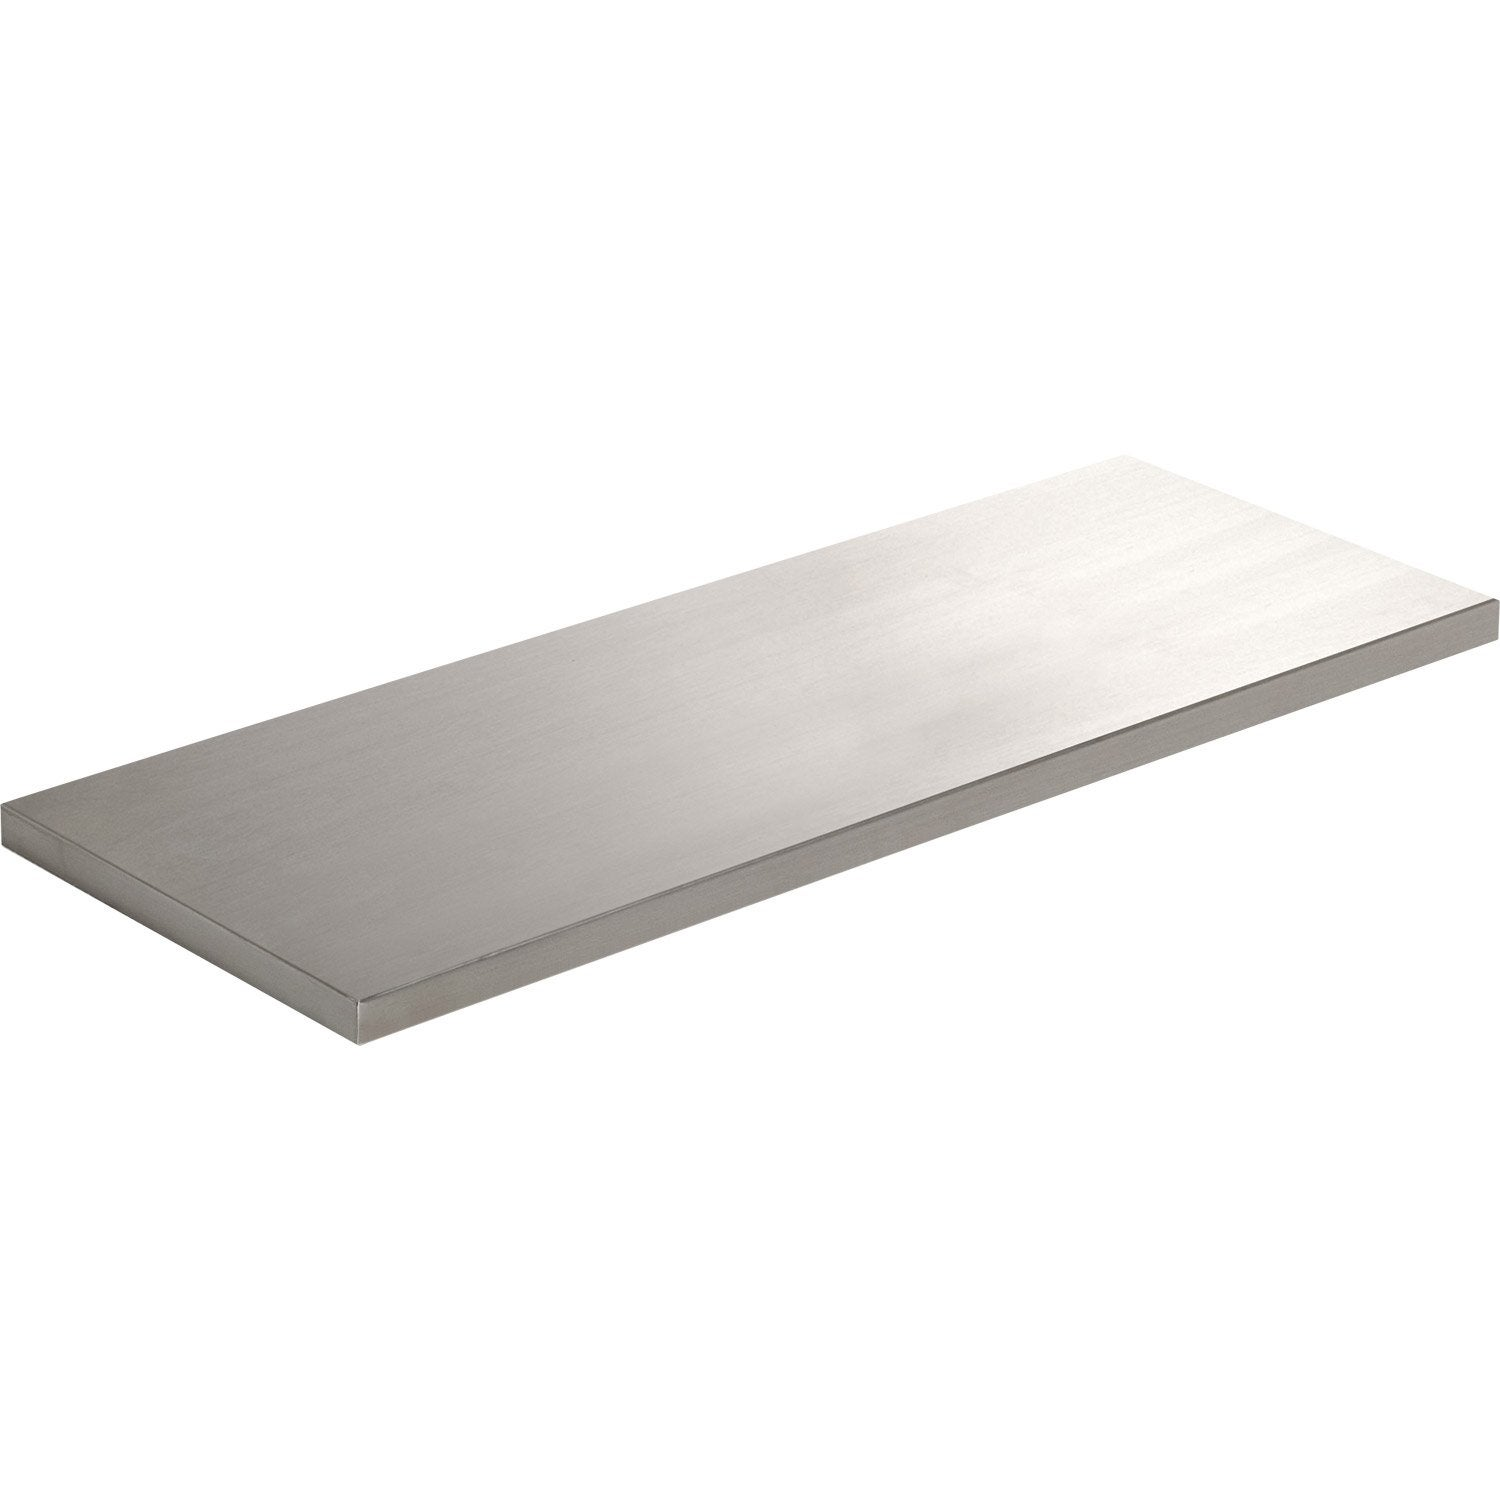 etag re murale inox l 60 x p 20 cm mm leroy merlin